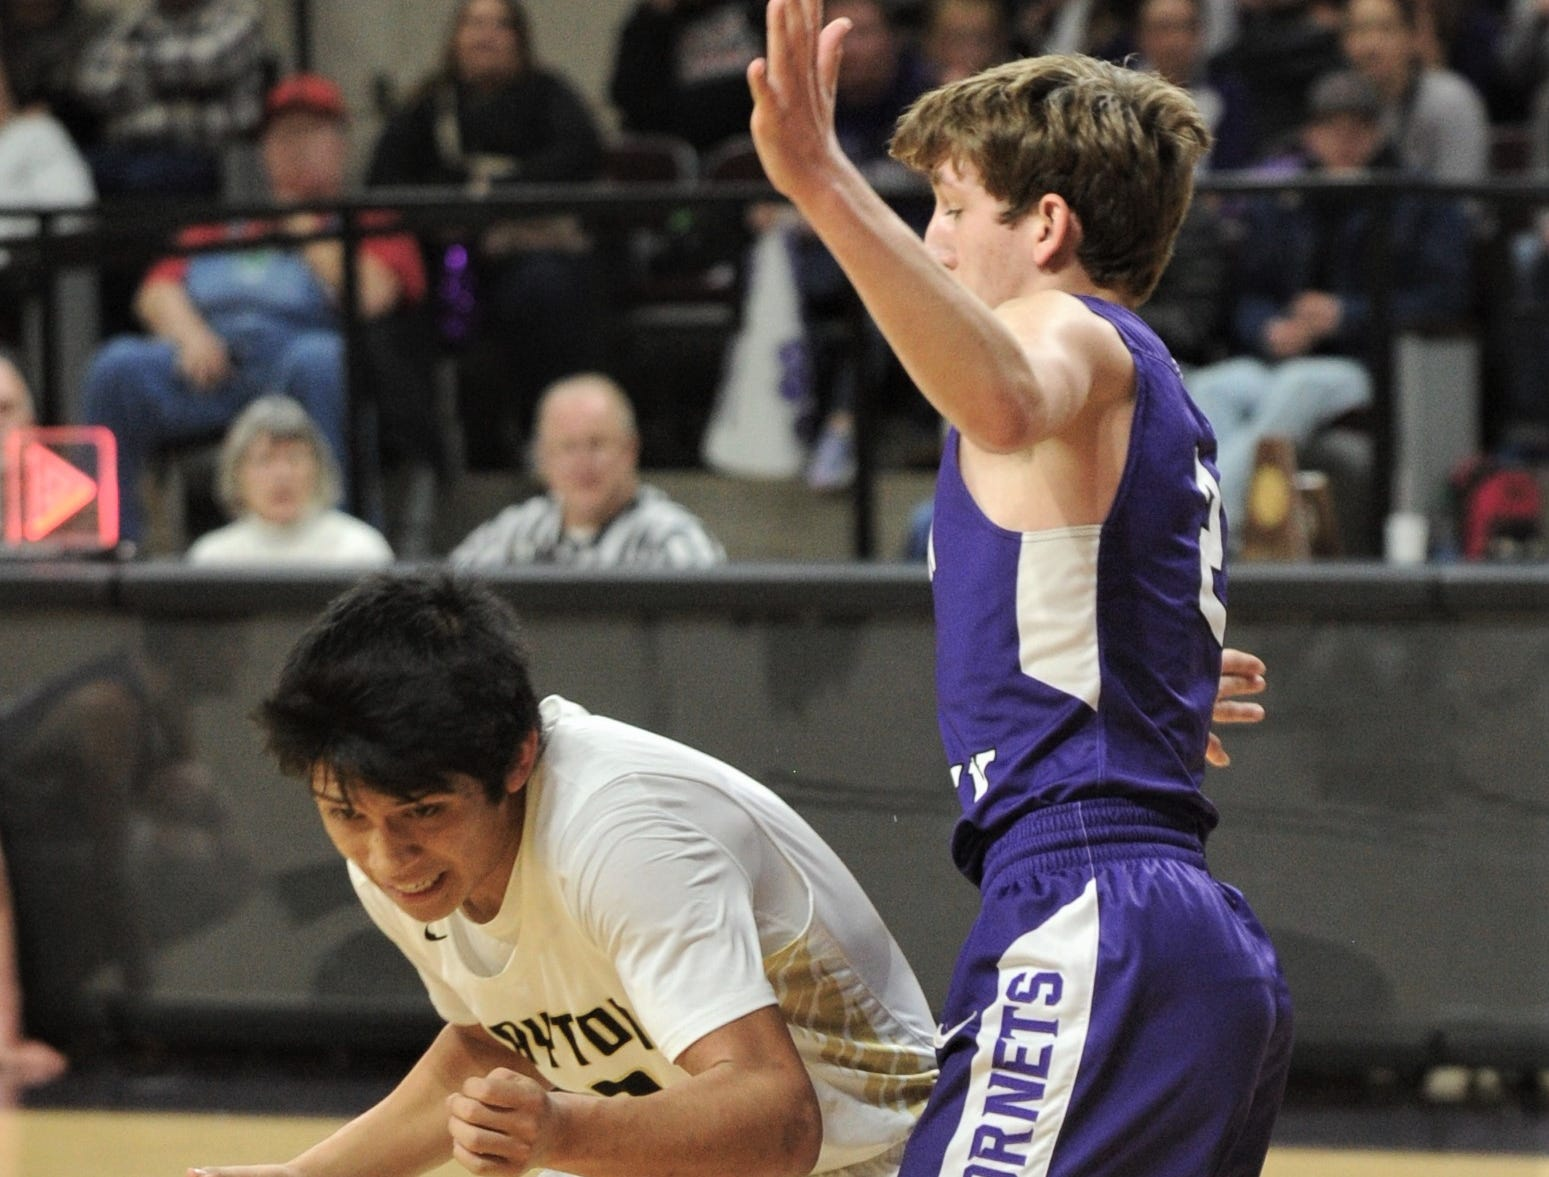 Jayton's Aaron Hernandez, left, tries to get around Irion County's Kaden Councilman. The Jaybirds beat Irion County 47-32 in the Region II-1A championship game Saturday, March 2, 2019, at Abilene Christian's Moody Coliseum.